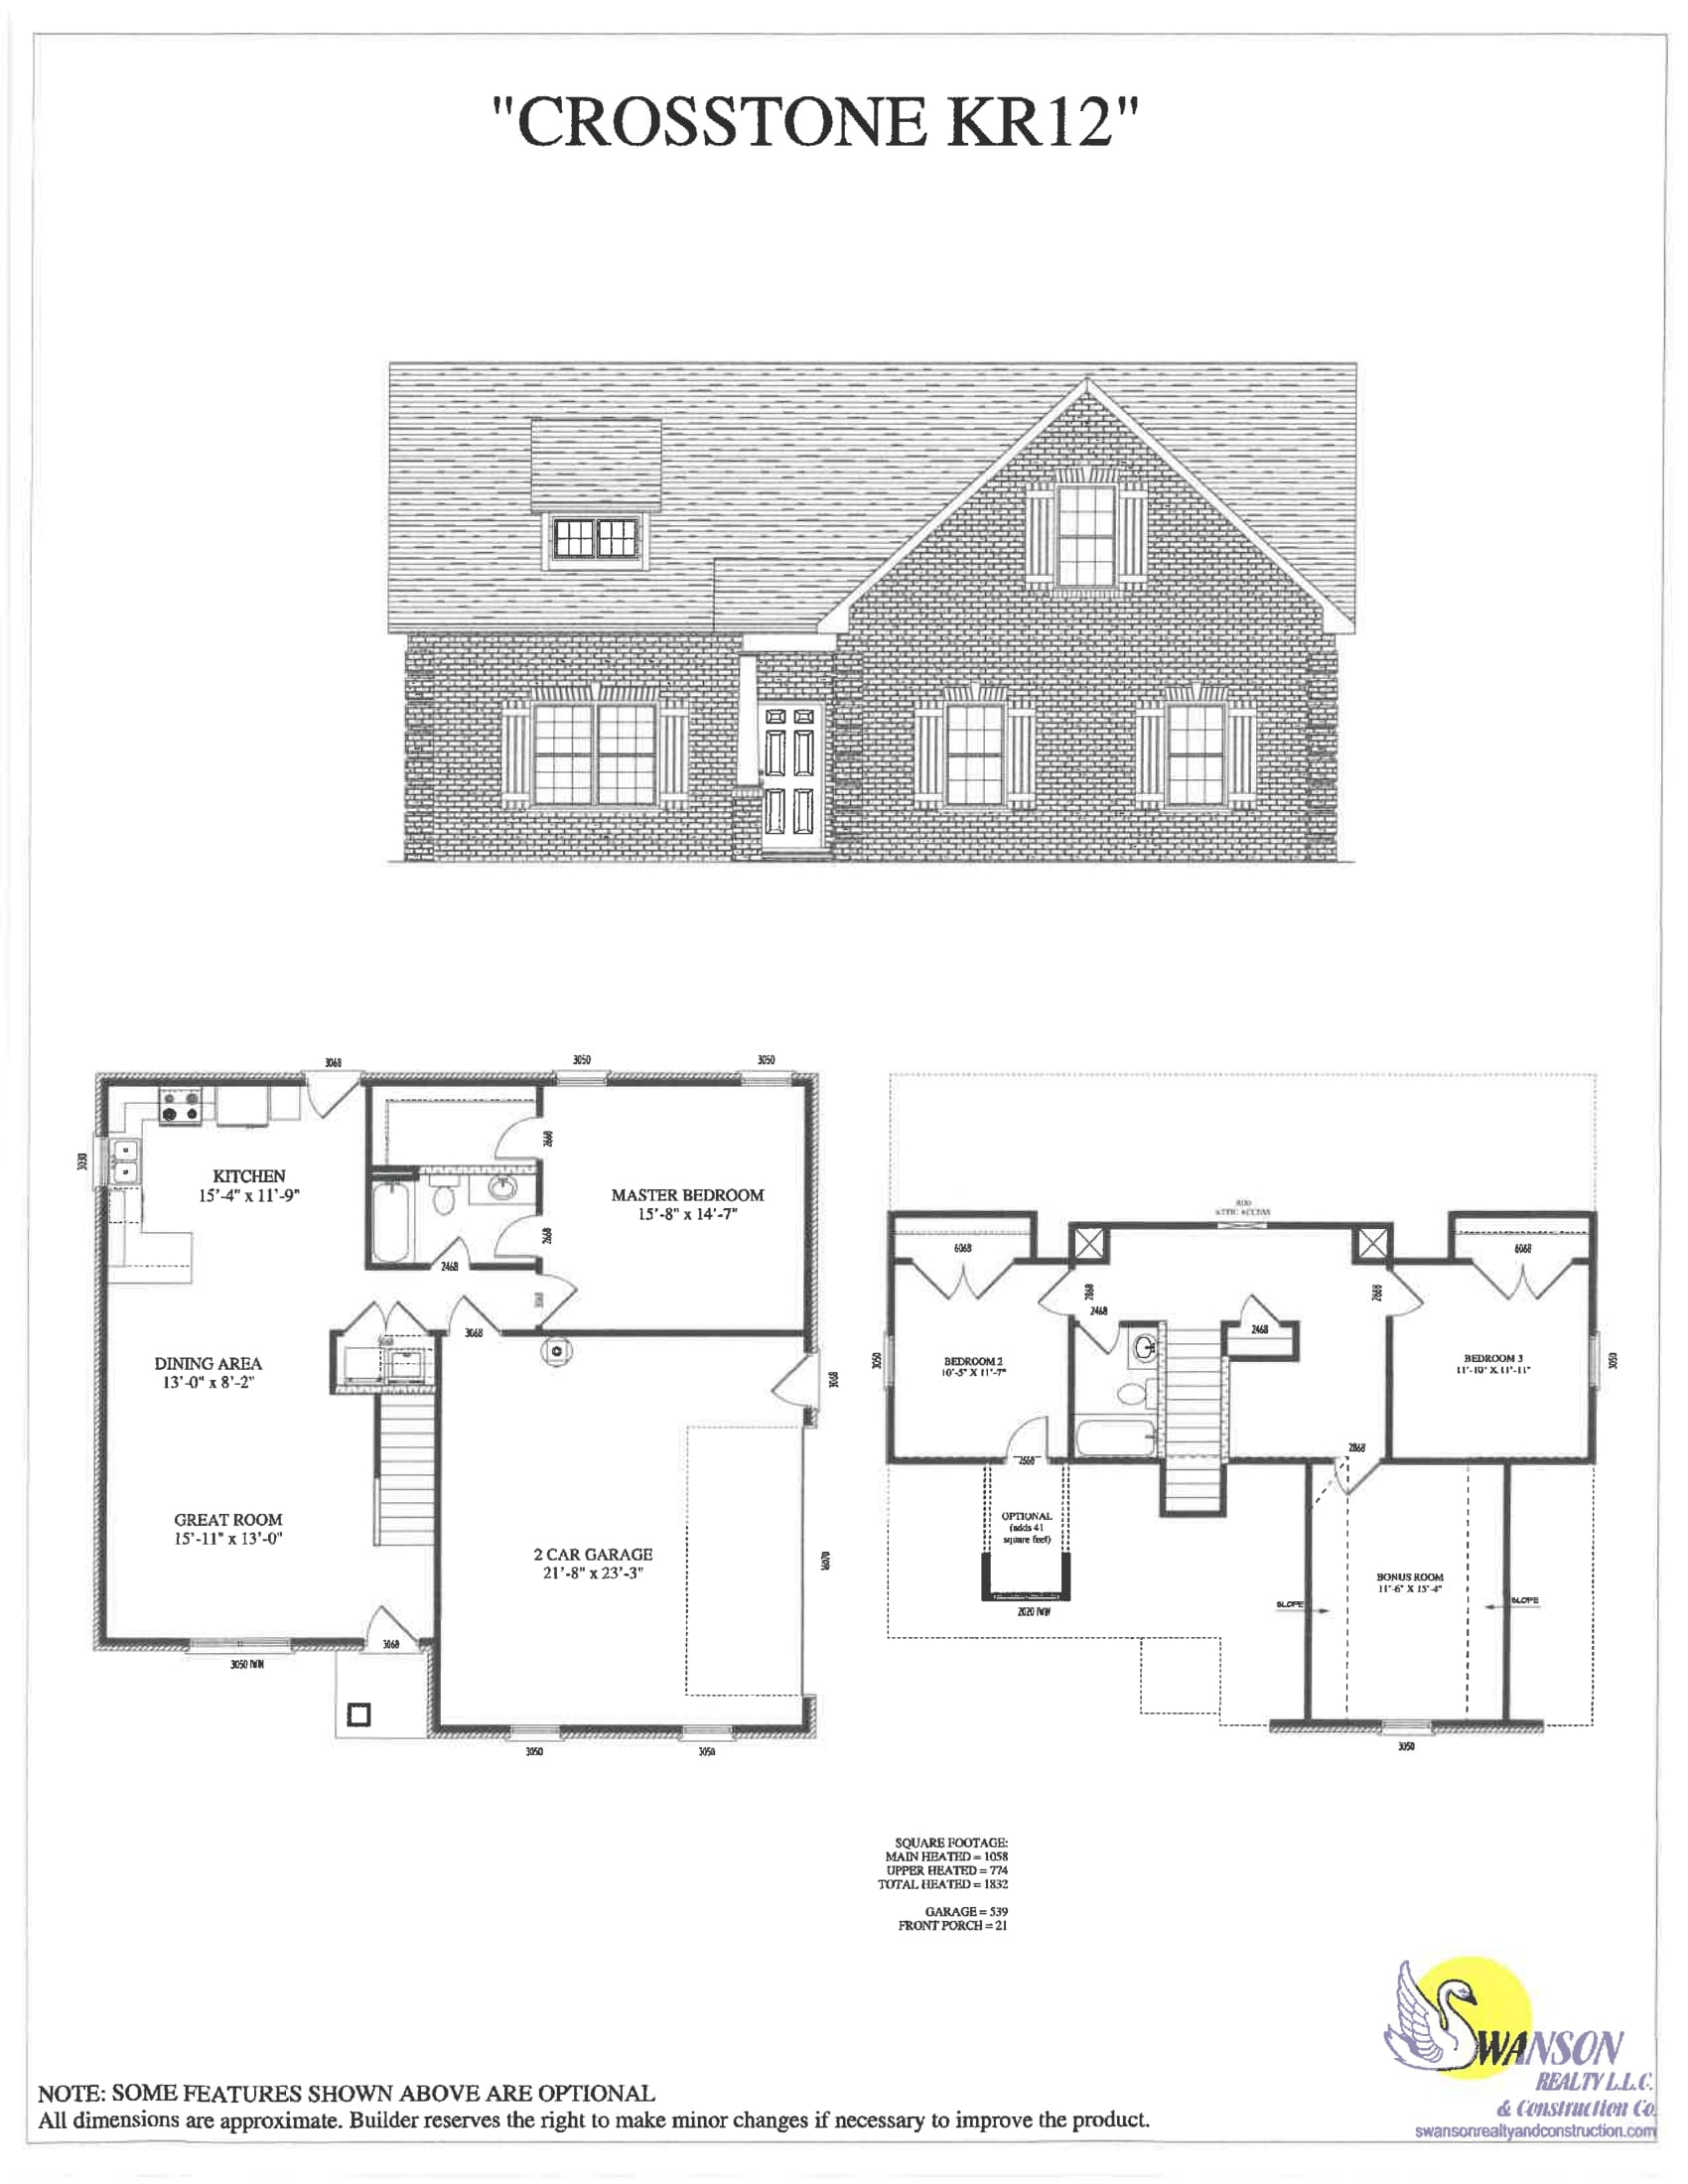 Crosstone 12 Sales Rendering 1